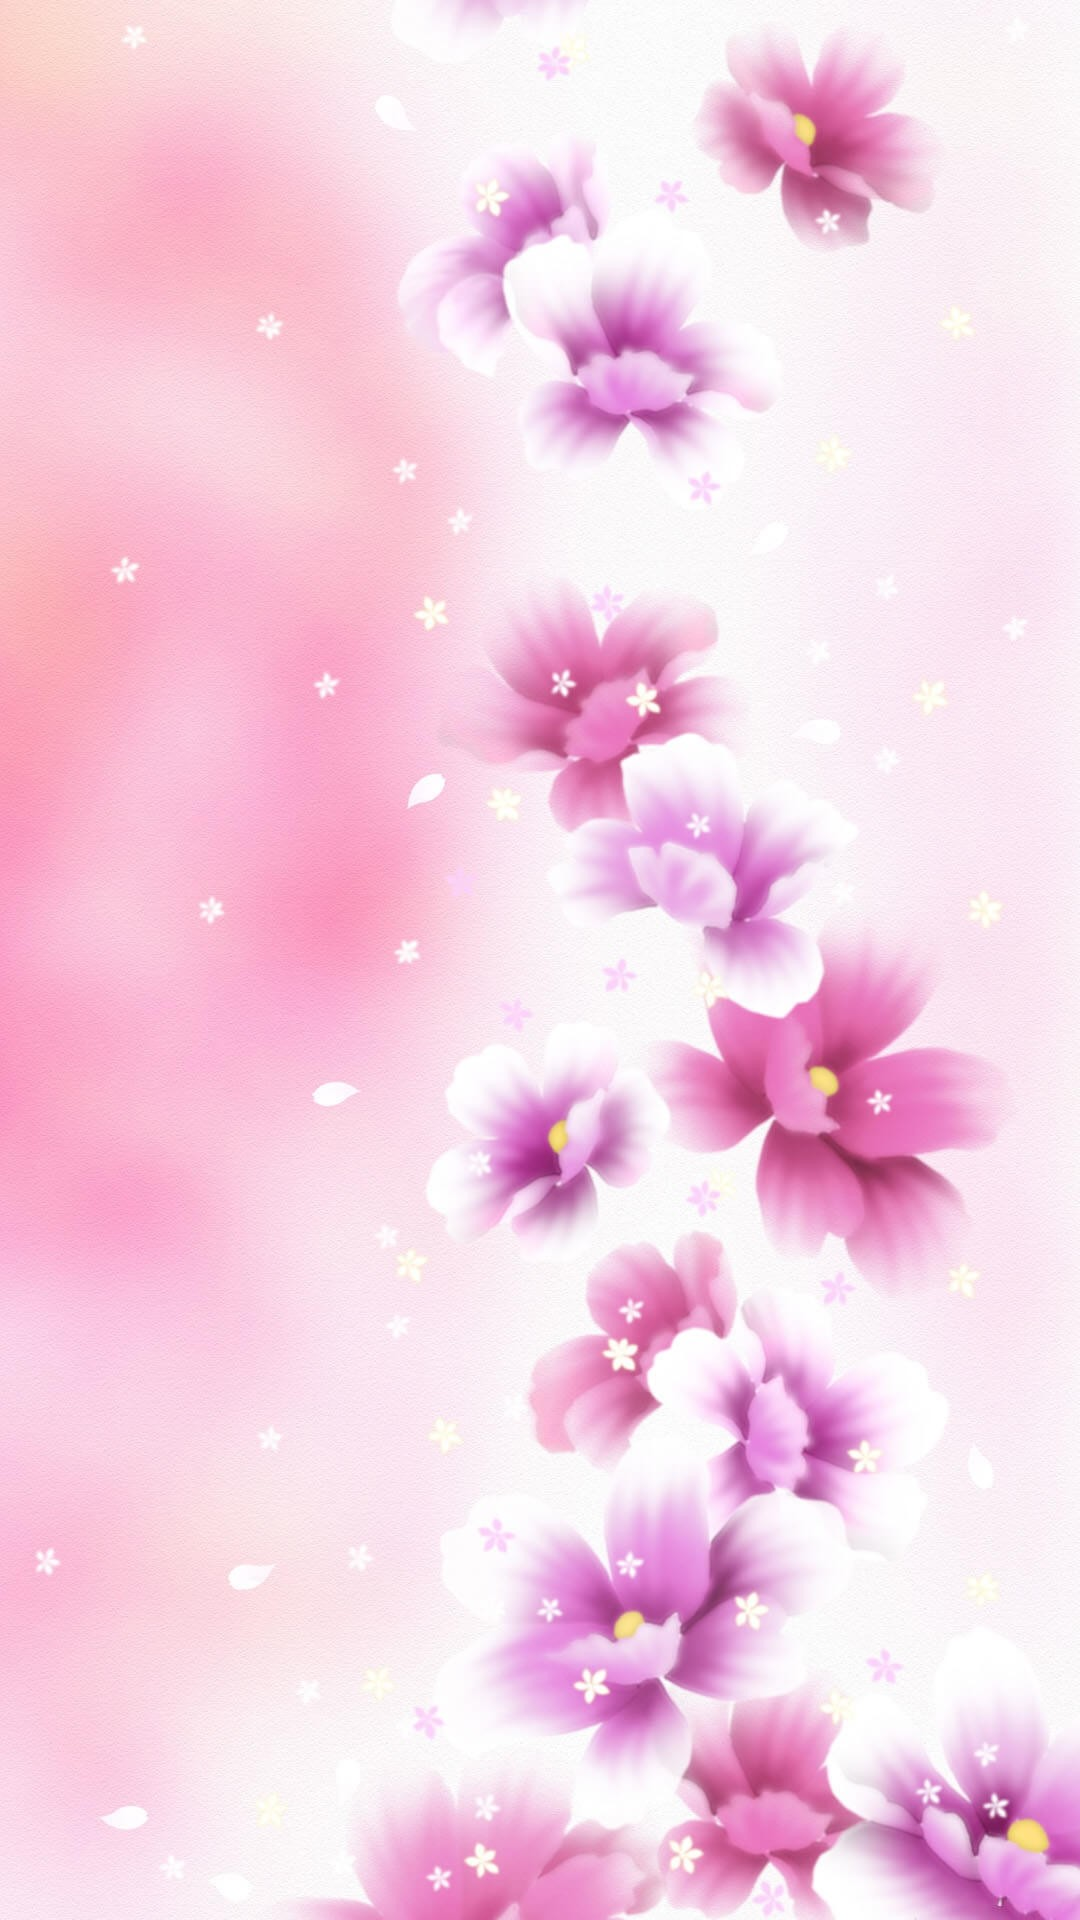 55 Girly Backgrounds 1 Download Free Awesome For